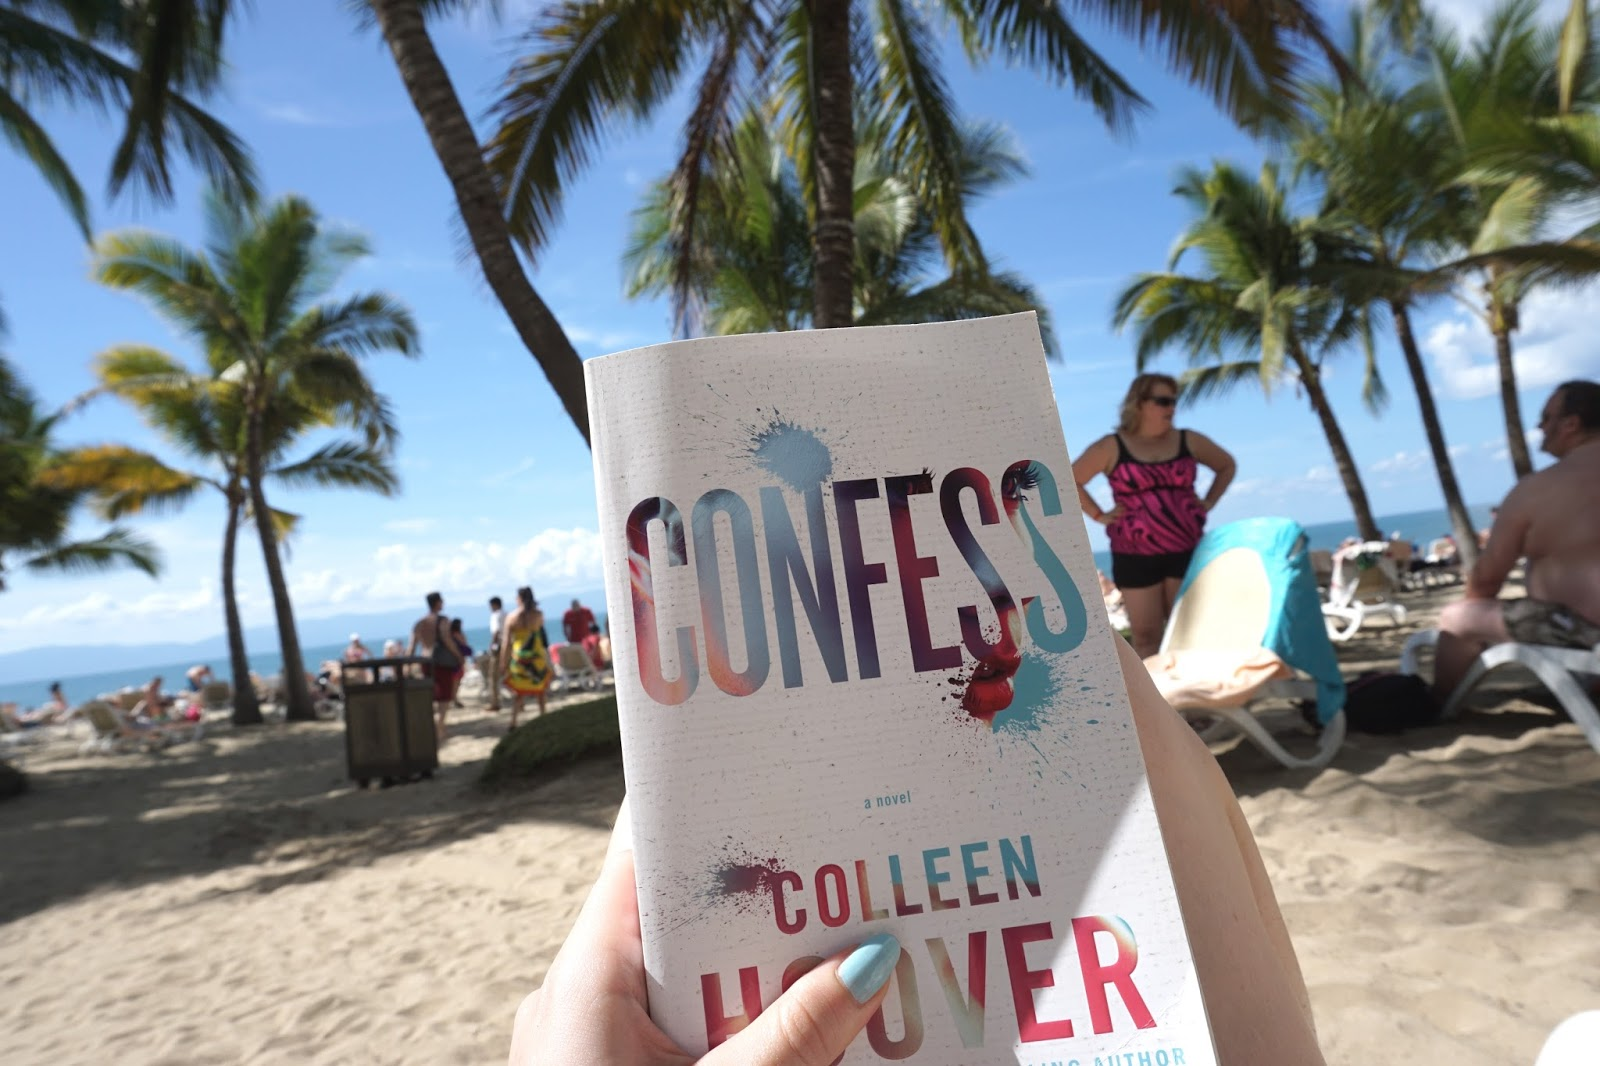 Book | Confess by Colleen Hoover